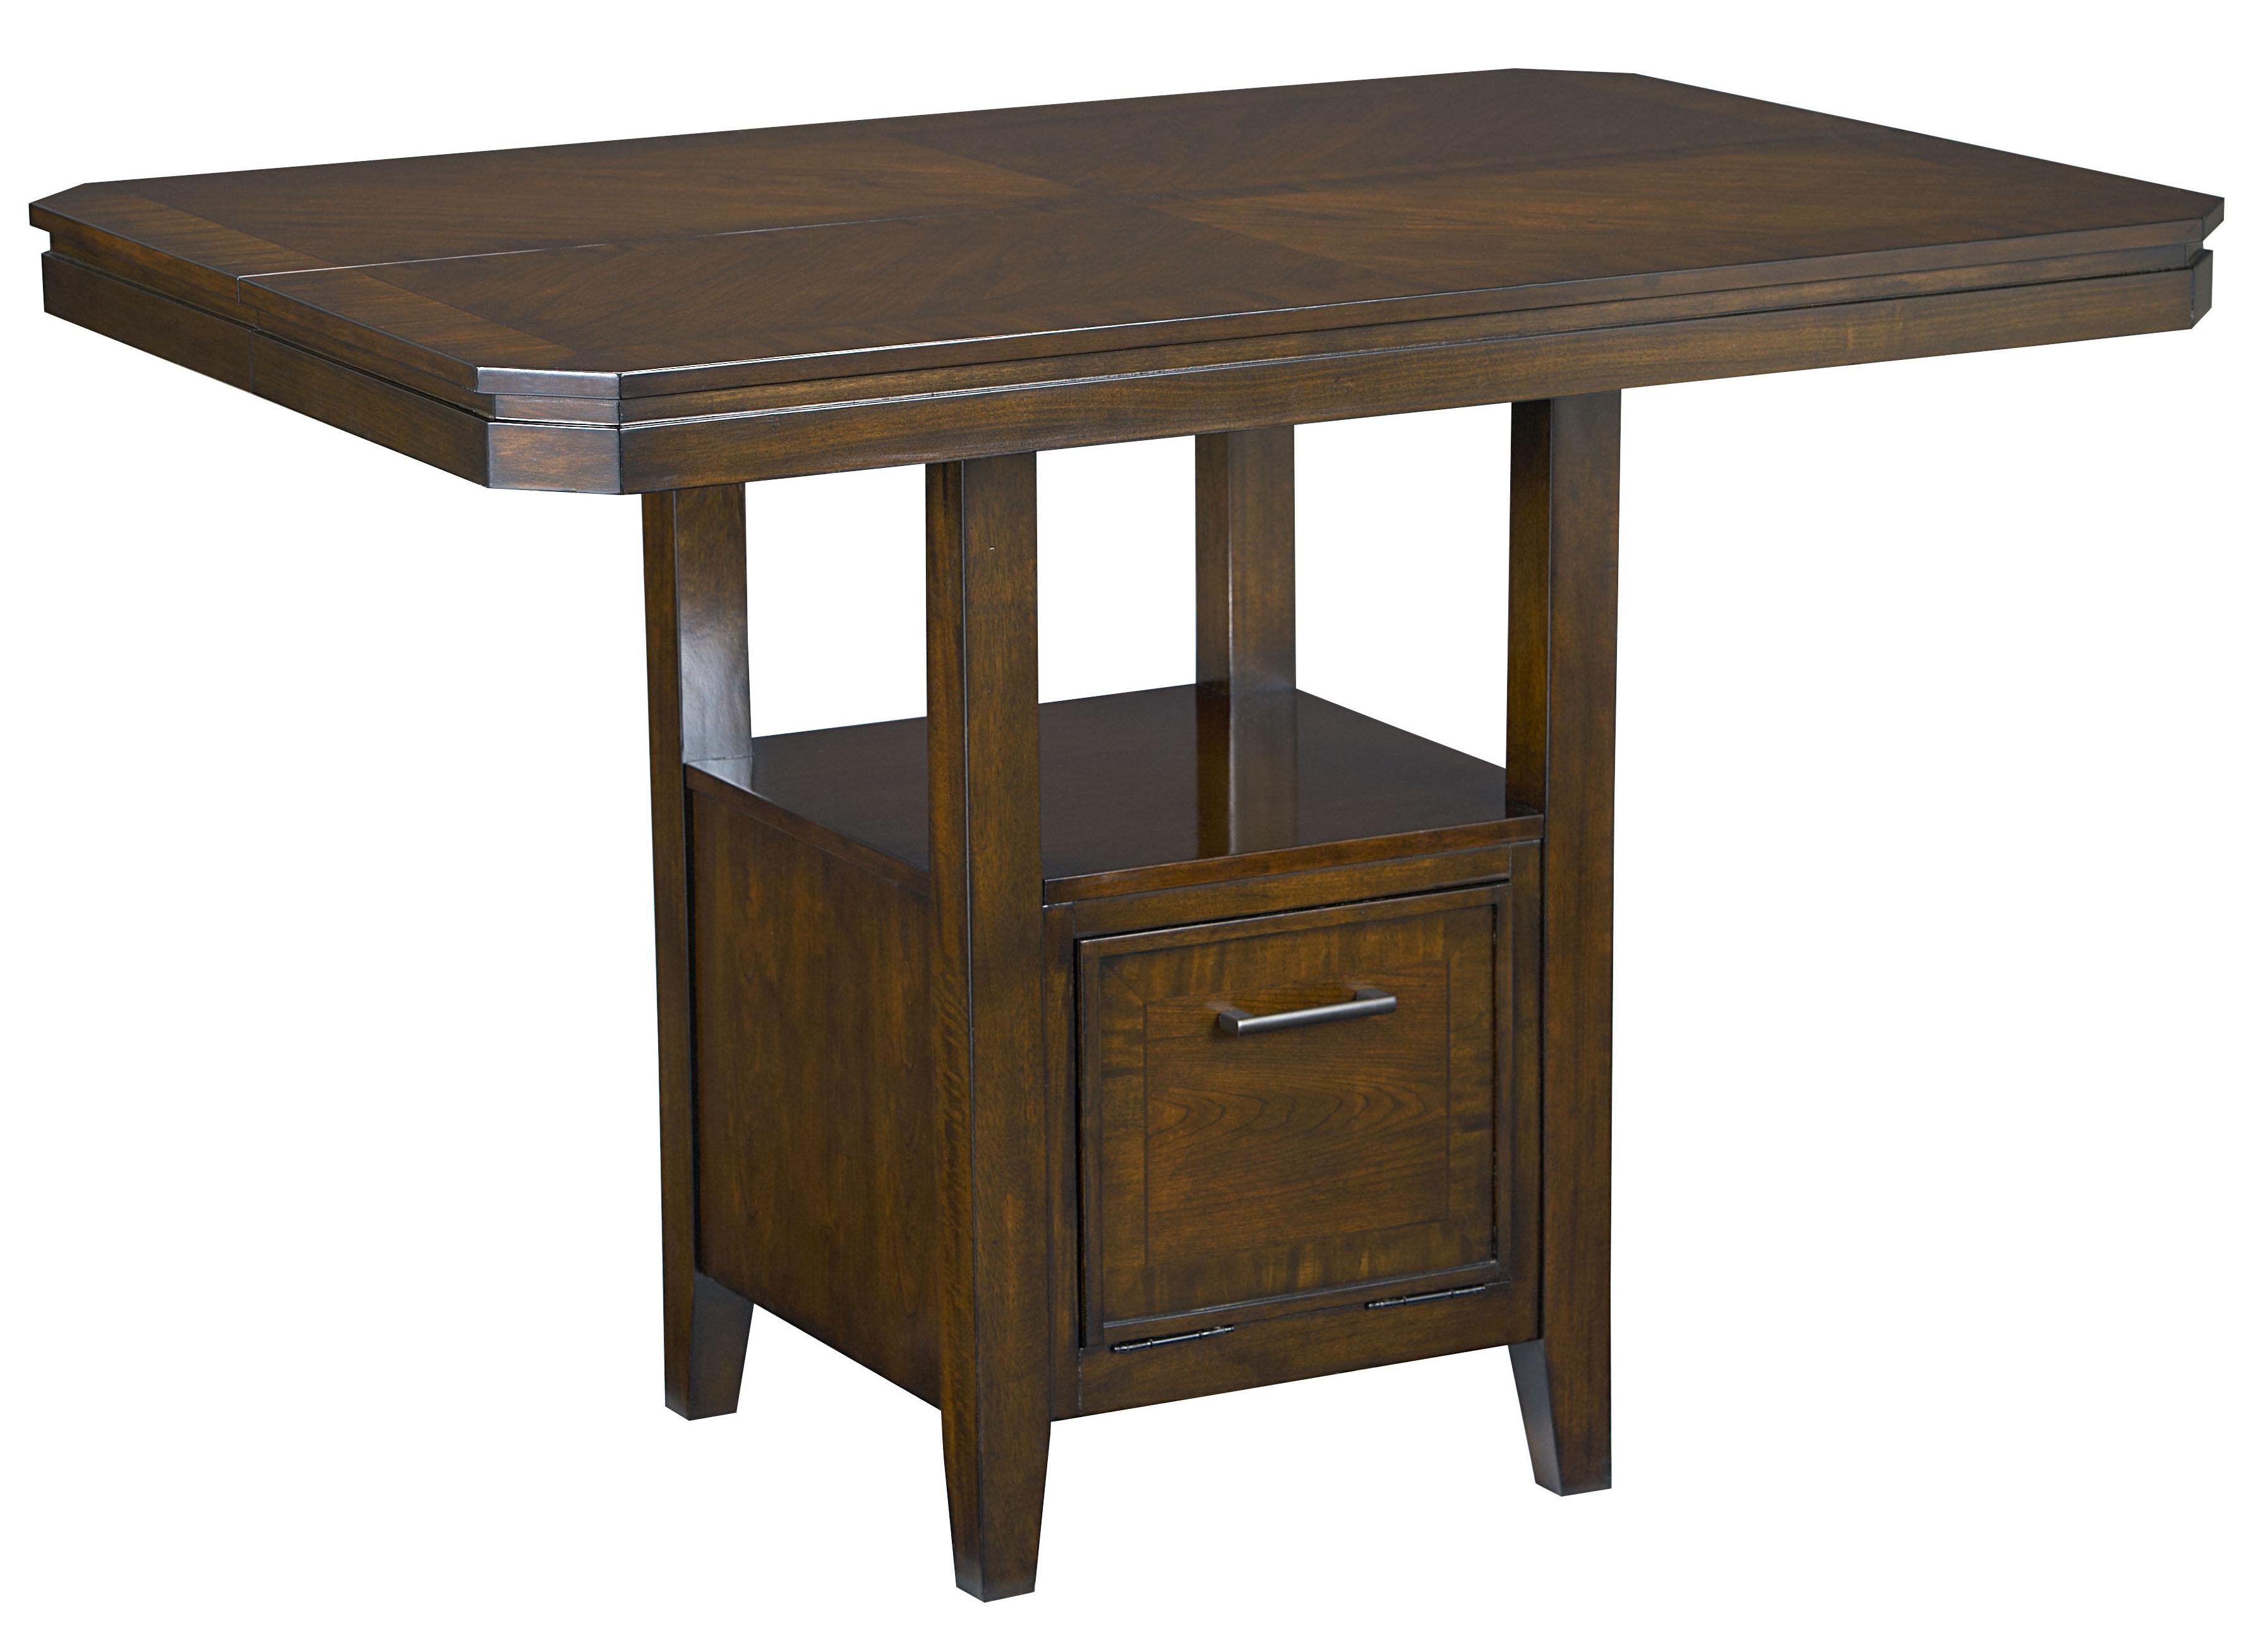 Standard furniture avion 17836 counter height table with for Standard dining table